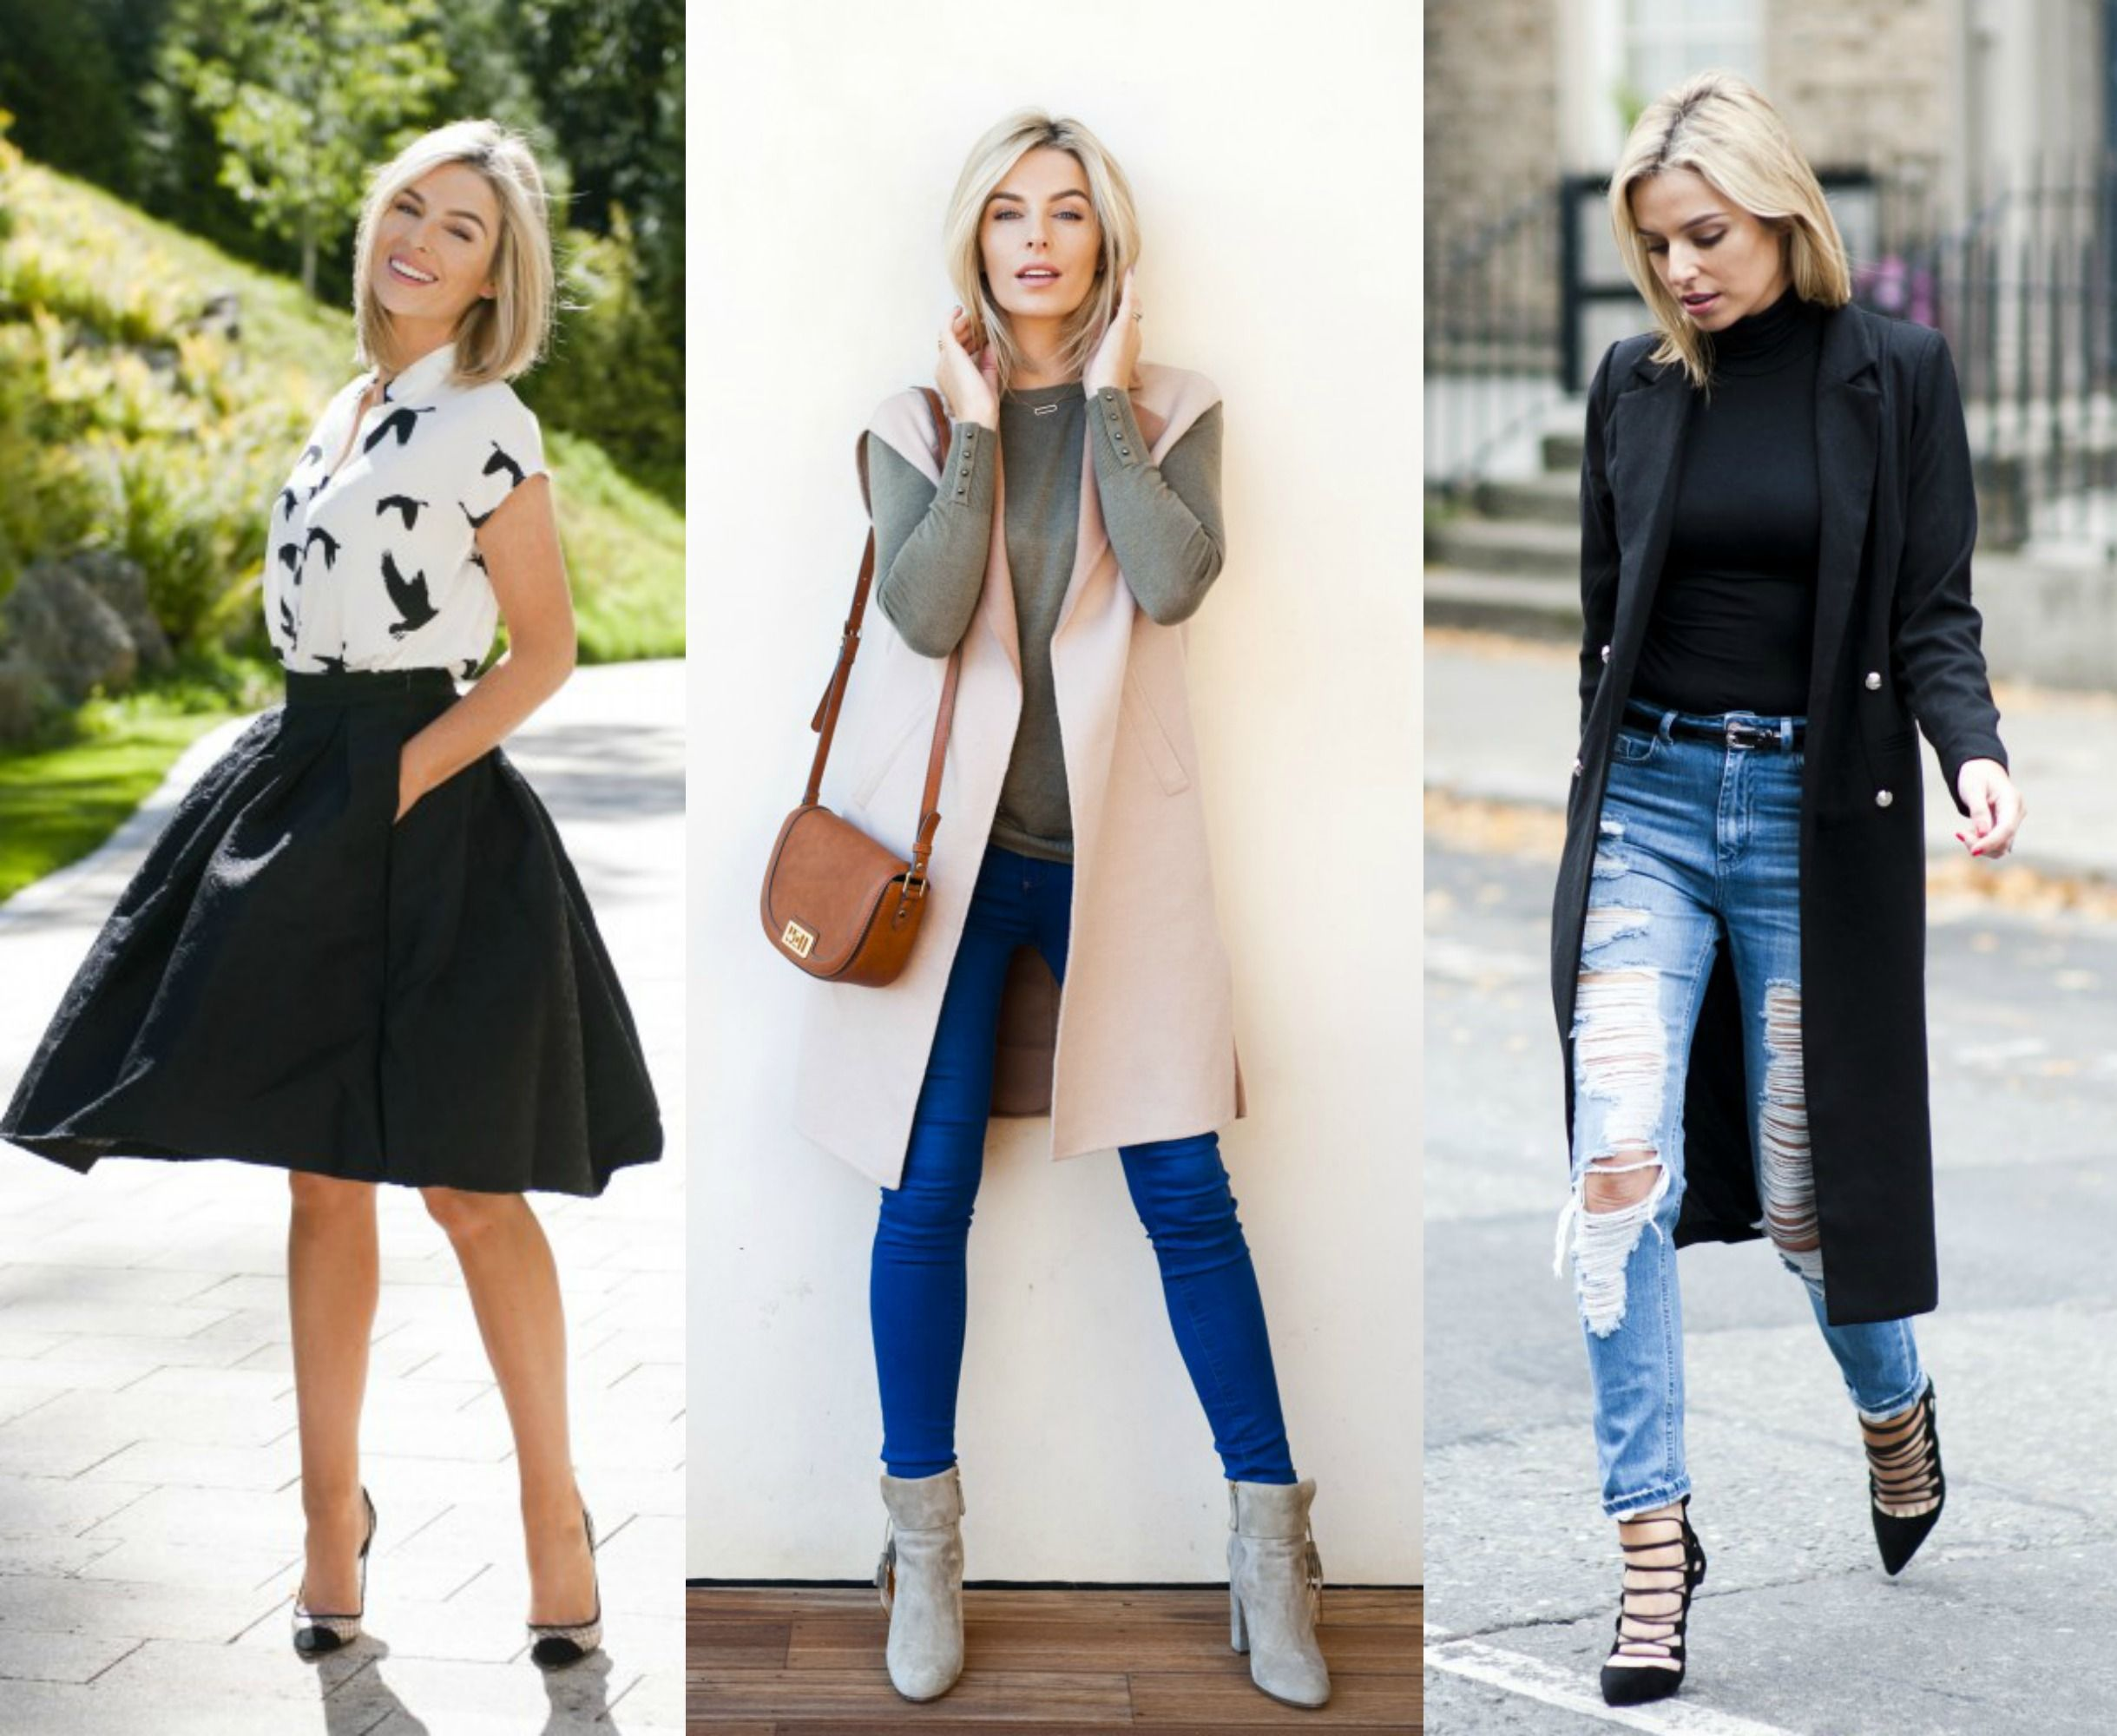 Fashion Inspirationcollege street style roundup september pictures